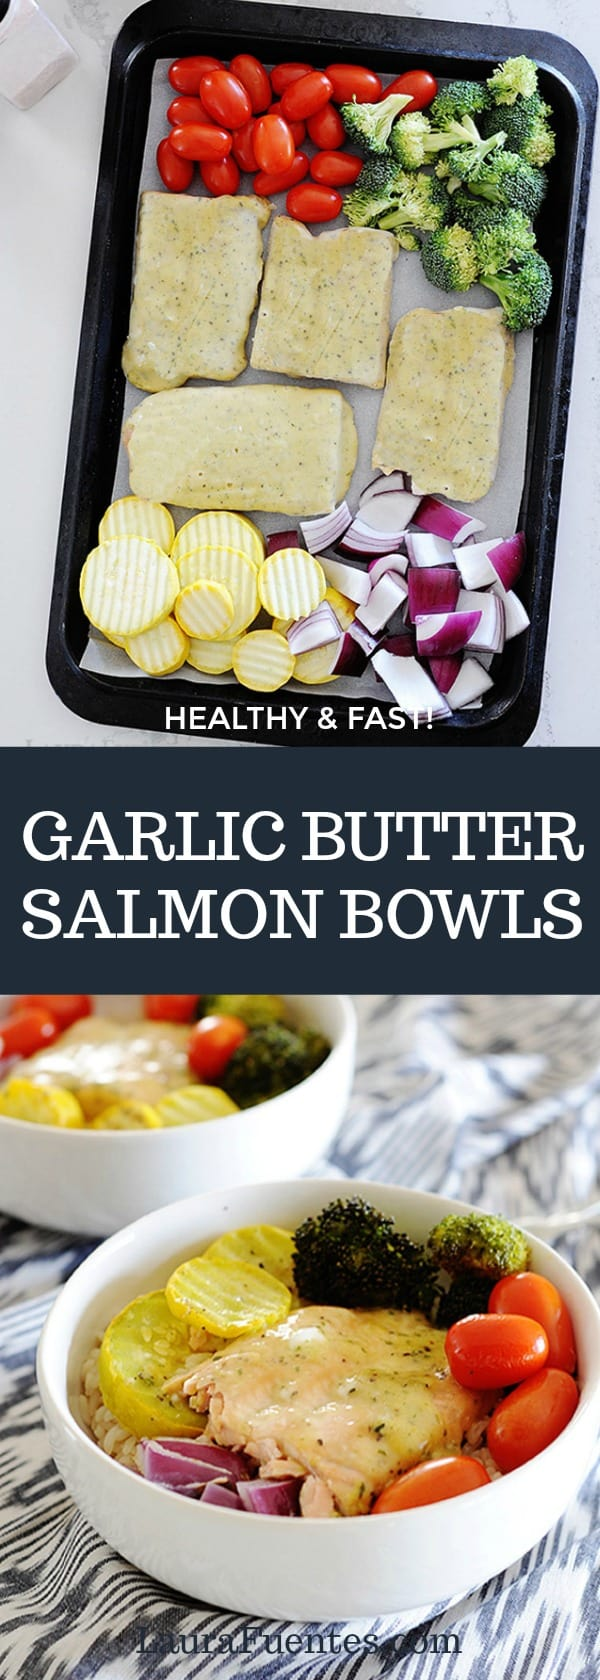 Garlic Butter Salmon Bowls that are all that and more. They are an easy sheet pan dinner for two or for a family!